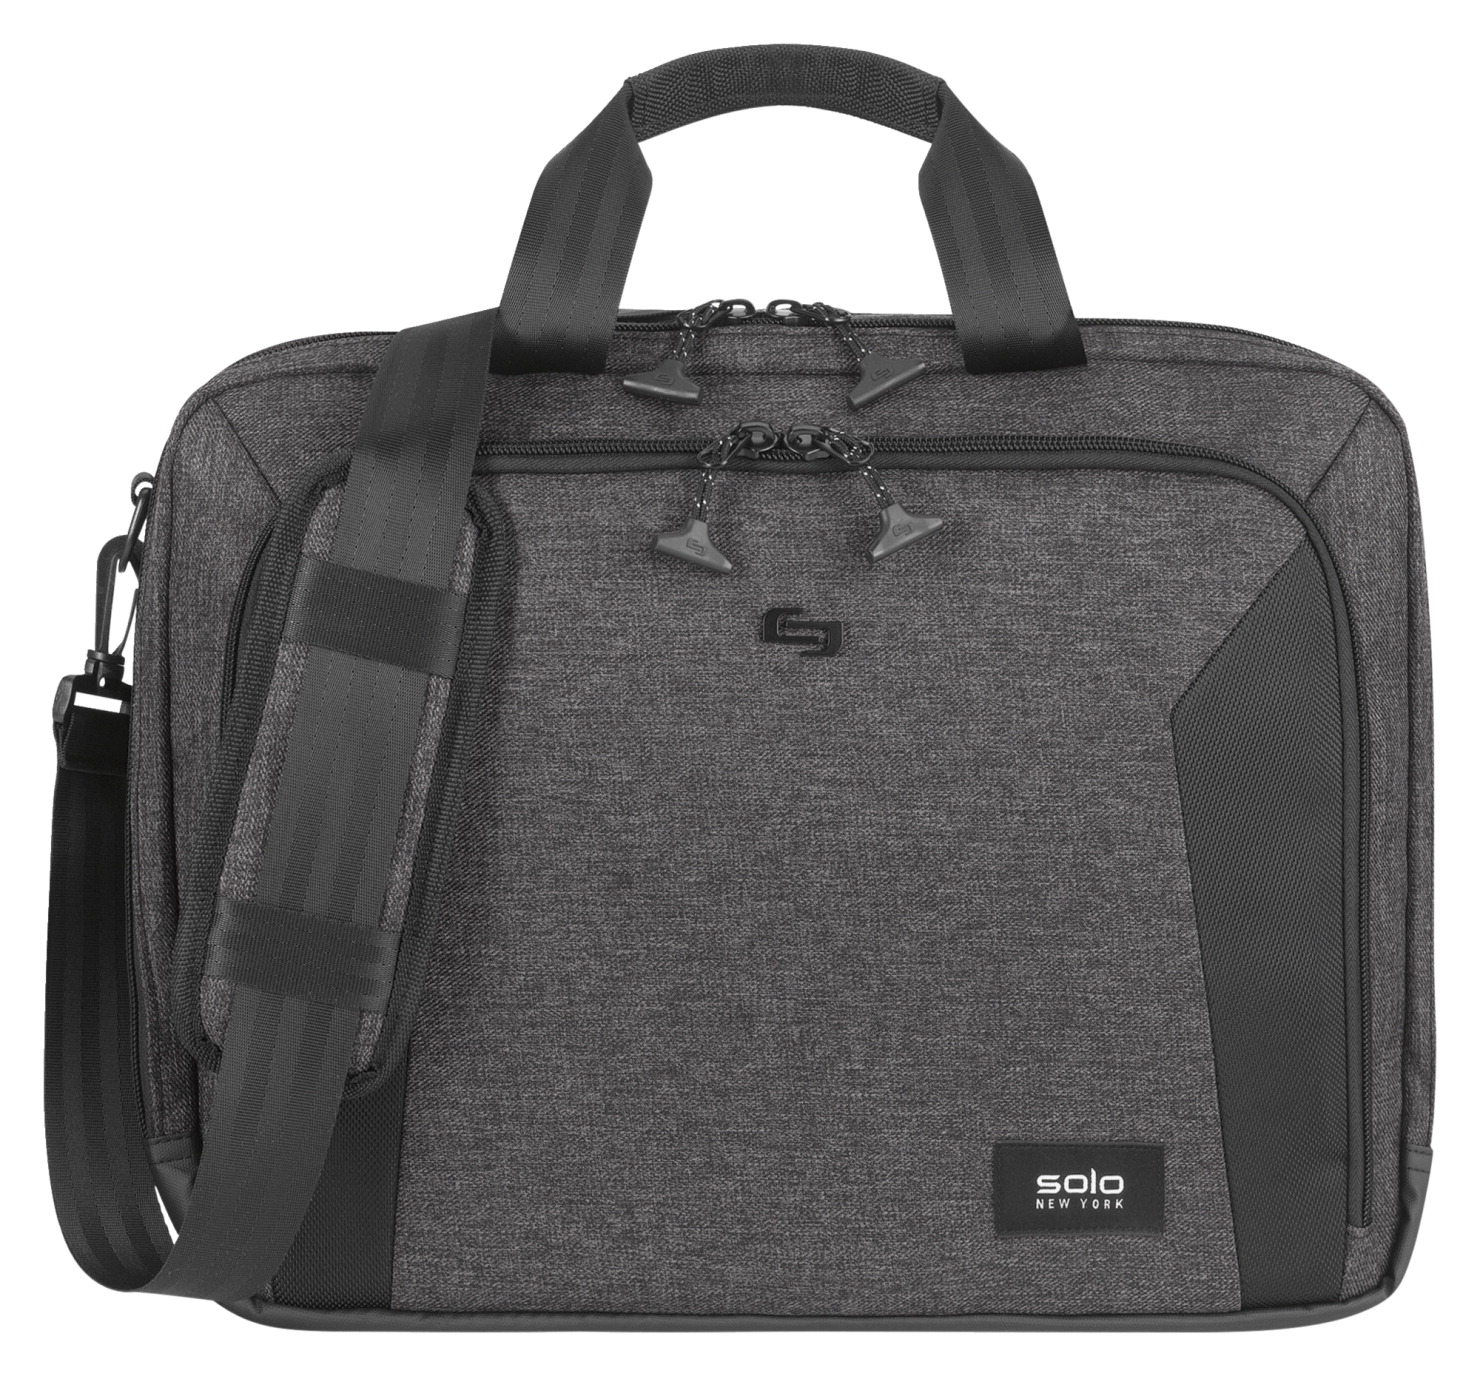 Solo Voyage Carrying Case (Briefcase) for 15.6